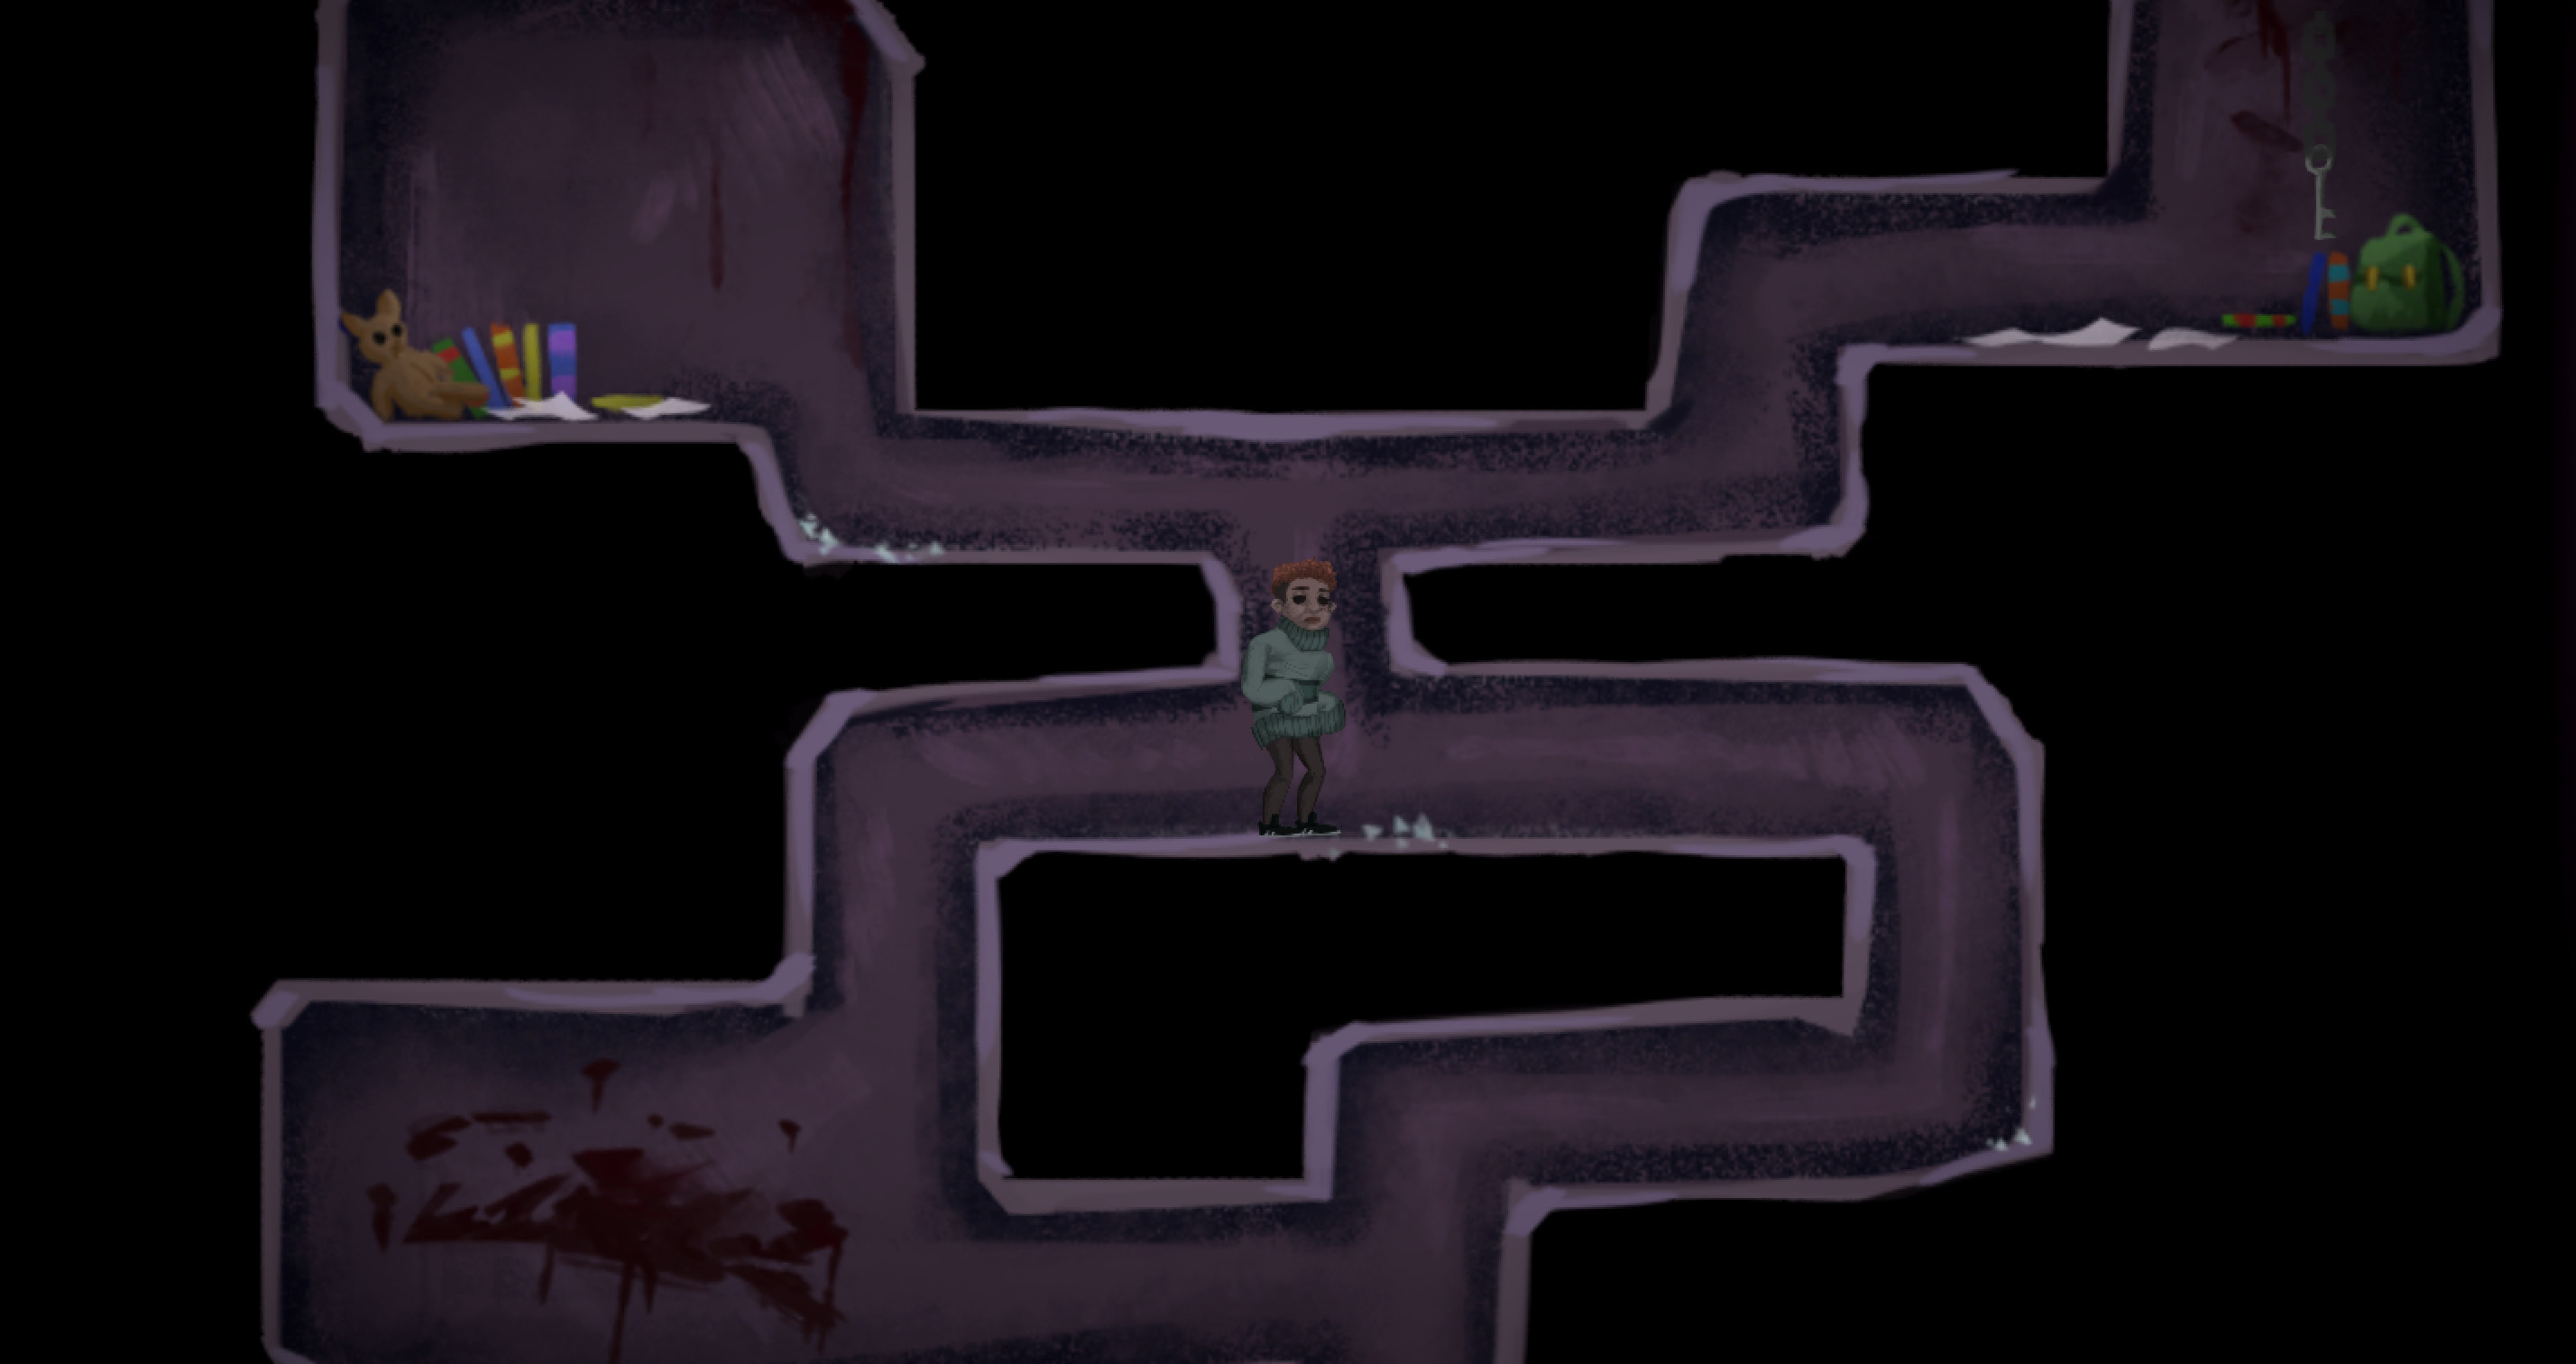 In-game Screenshot #4 – Tunnels that Squishboy can access which reveals his backstory and untimely demise (teddy bear, books, paper, blood, etc)